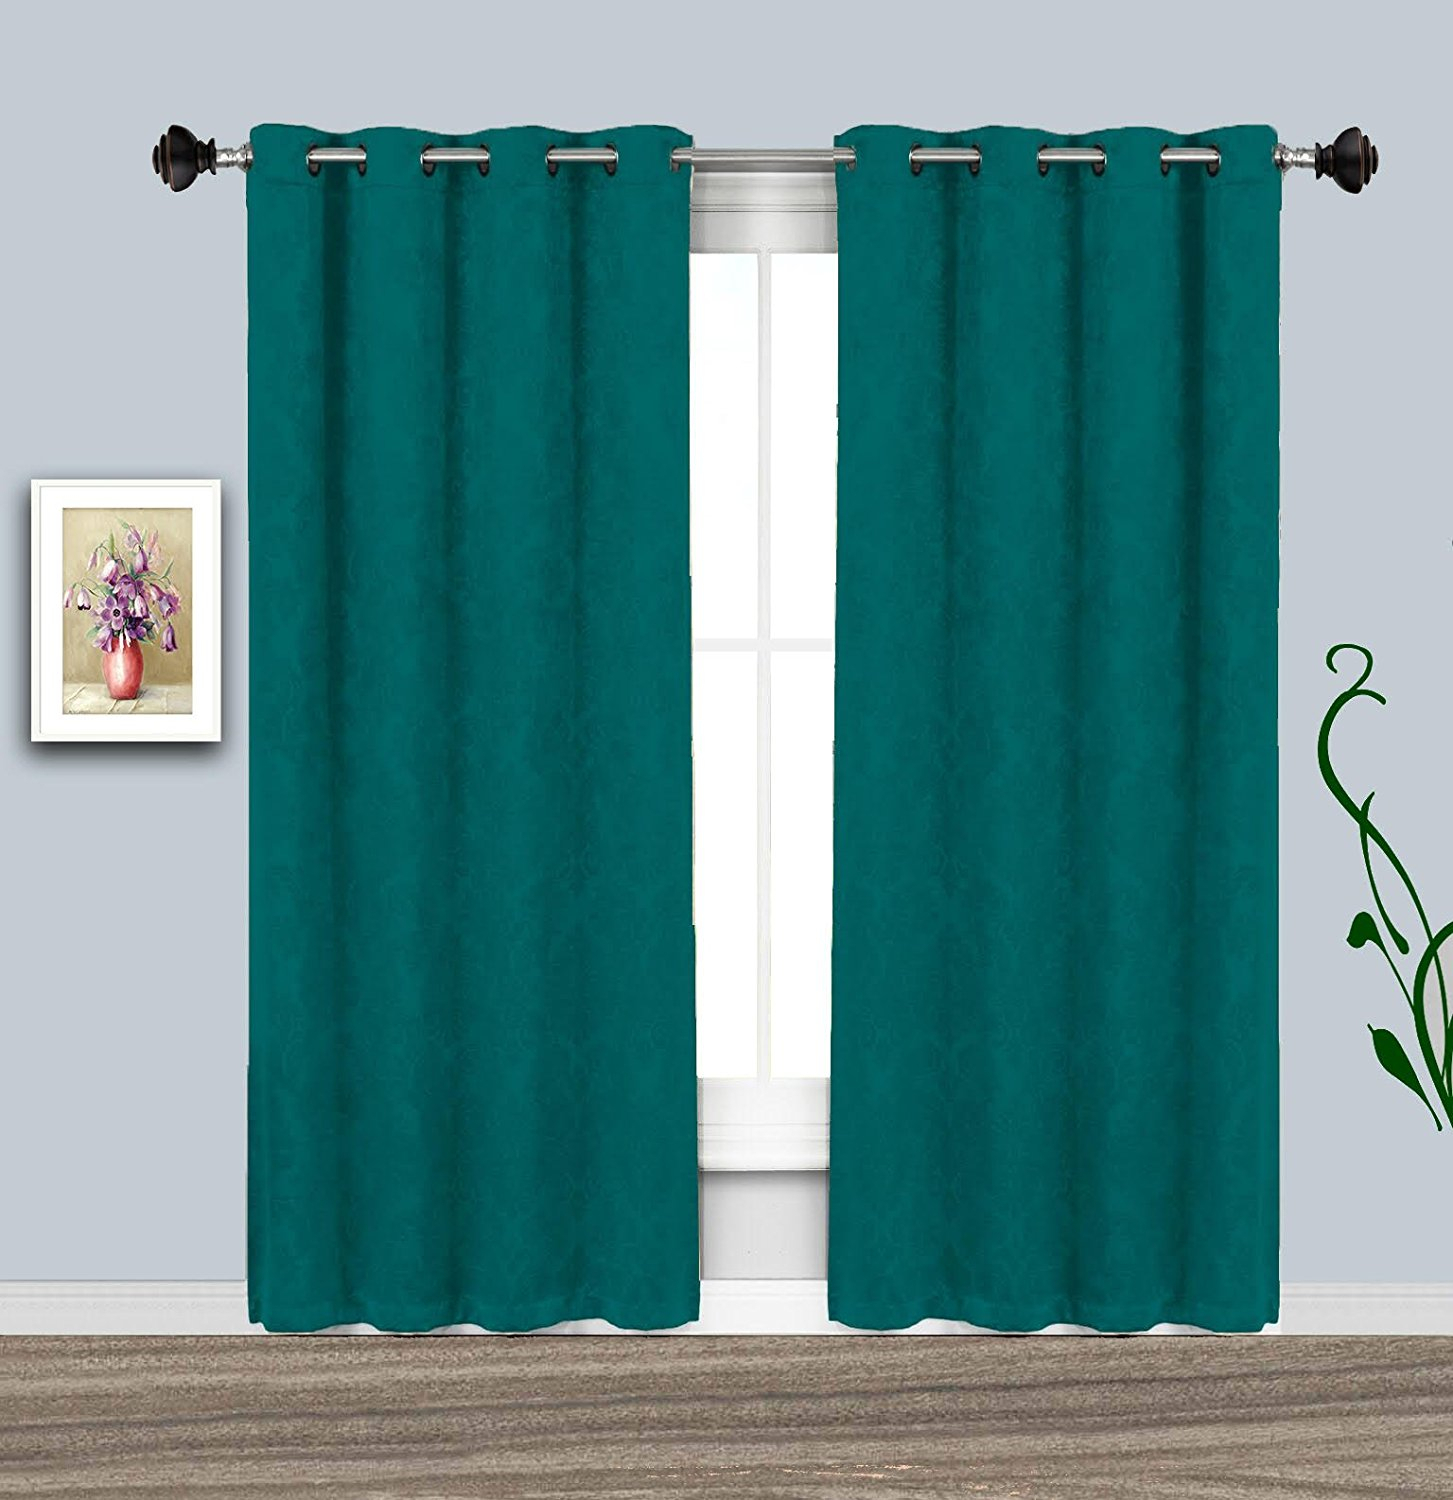 Cheap Teal Window Panel, Find Teal Window Panel Deals On Pertaining To Tassels Applique Sheer Rod Pocket Top Curtain Panel Pairs (View 29 of 30)